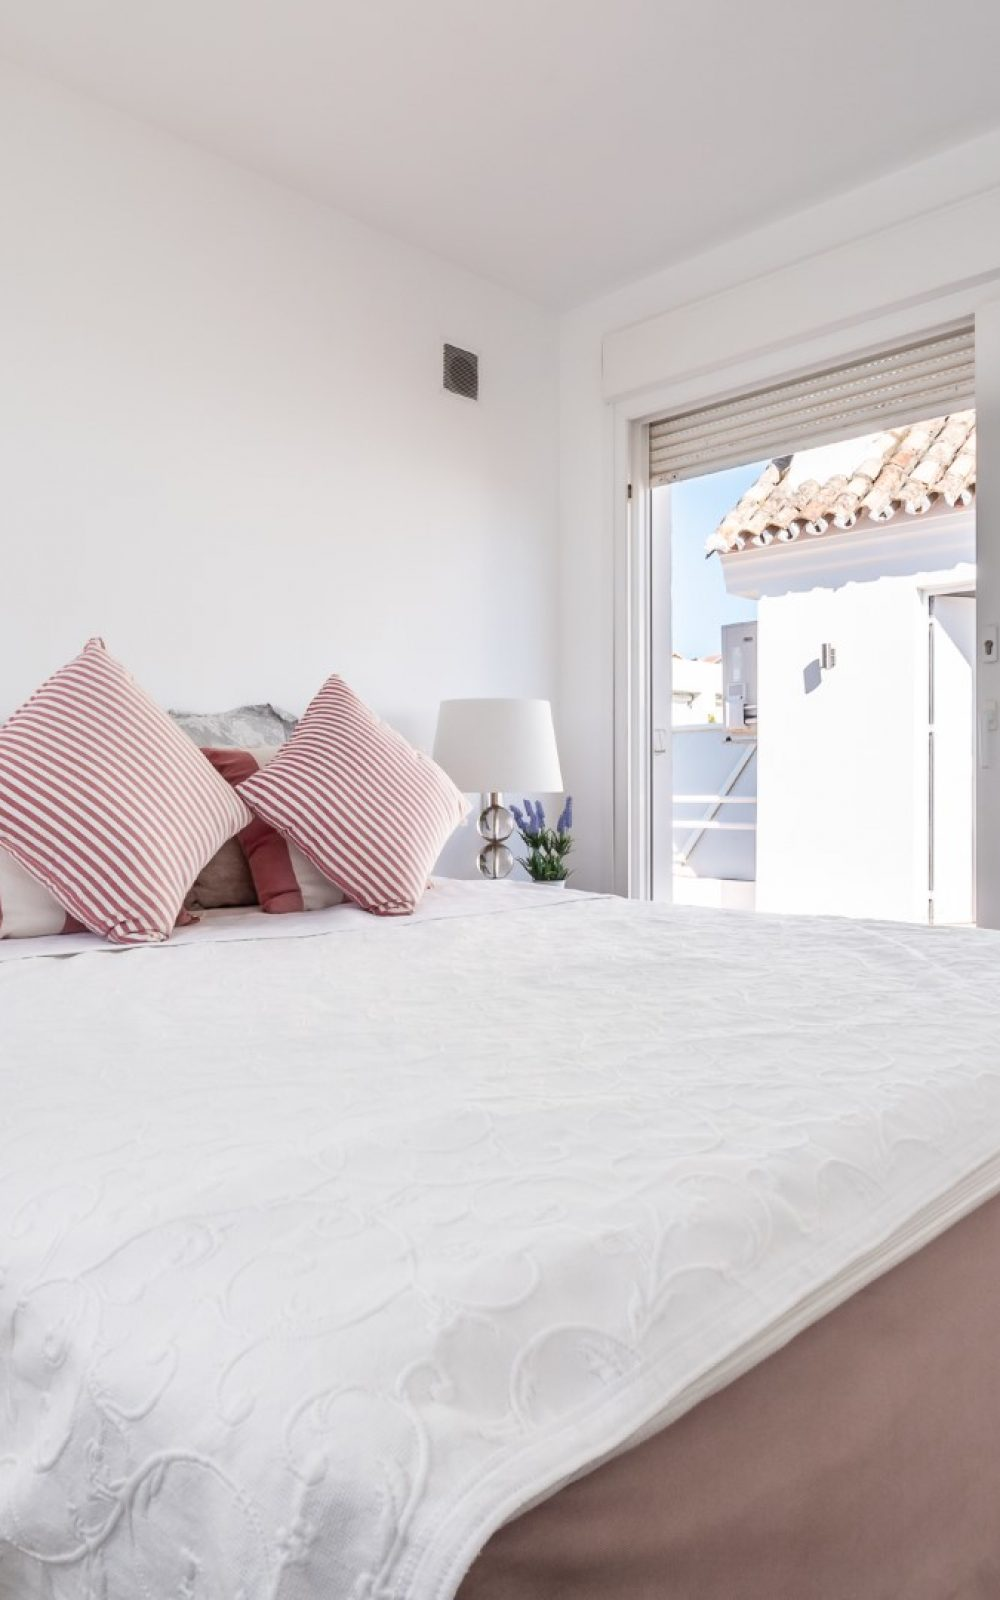 Alcores 532-NFH-11Bedroom-01 (Large)